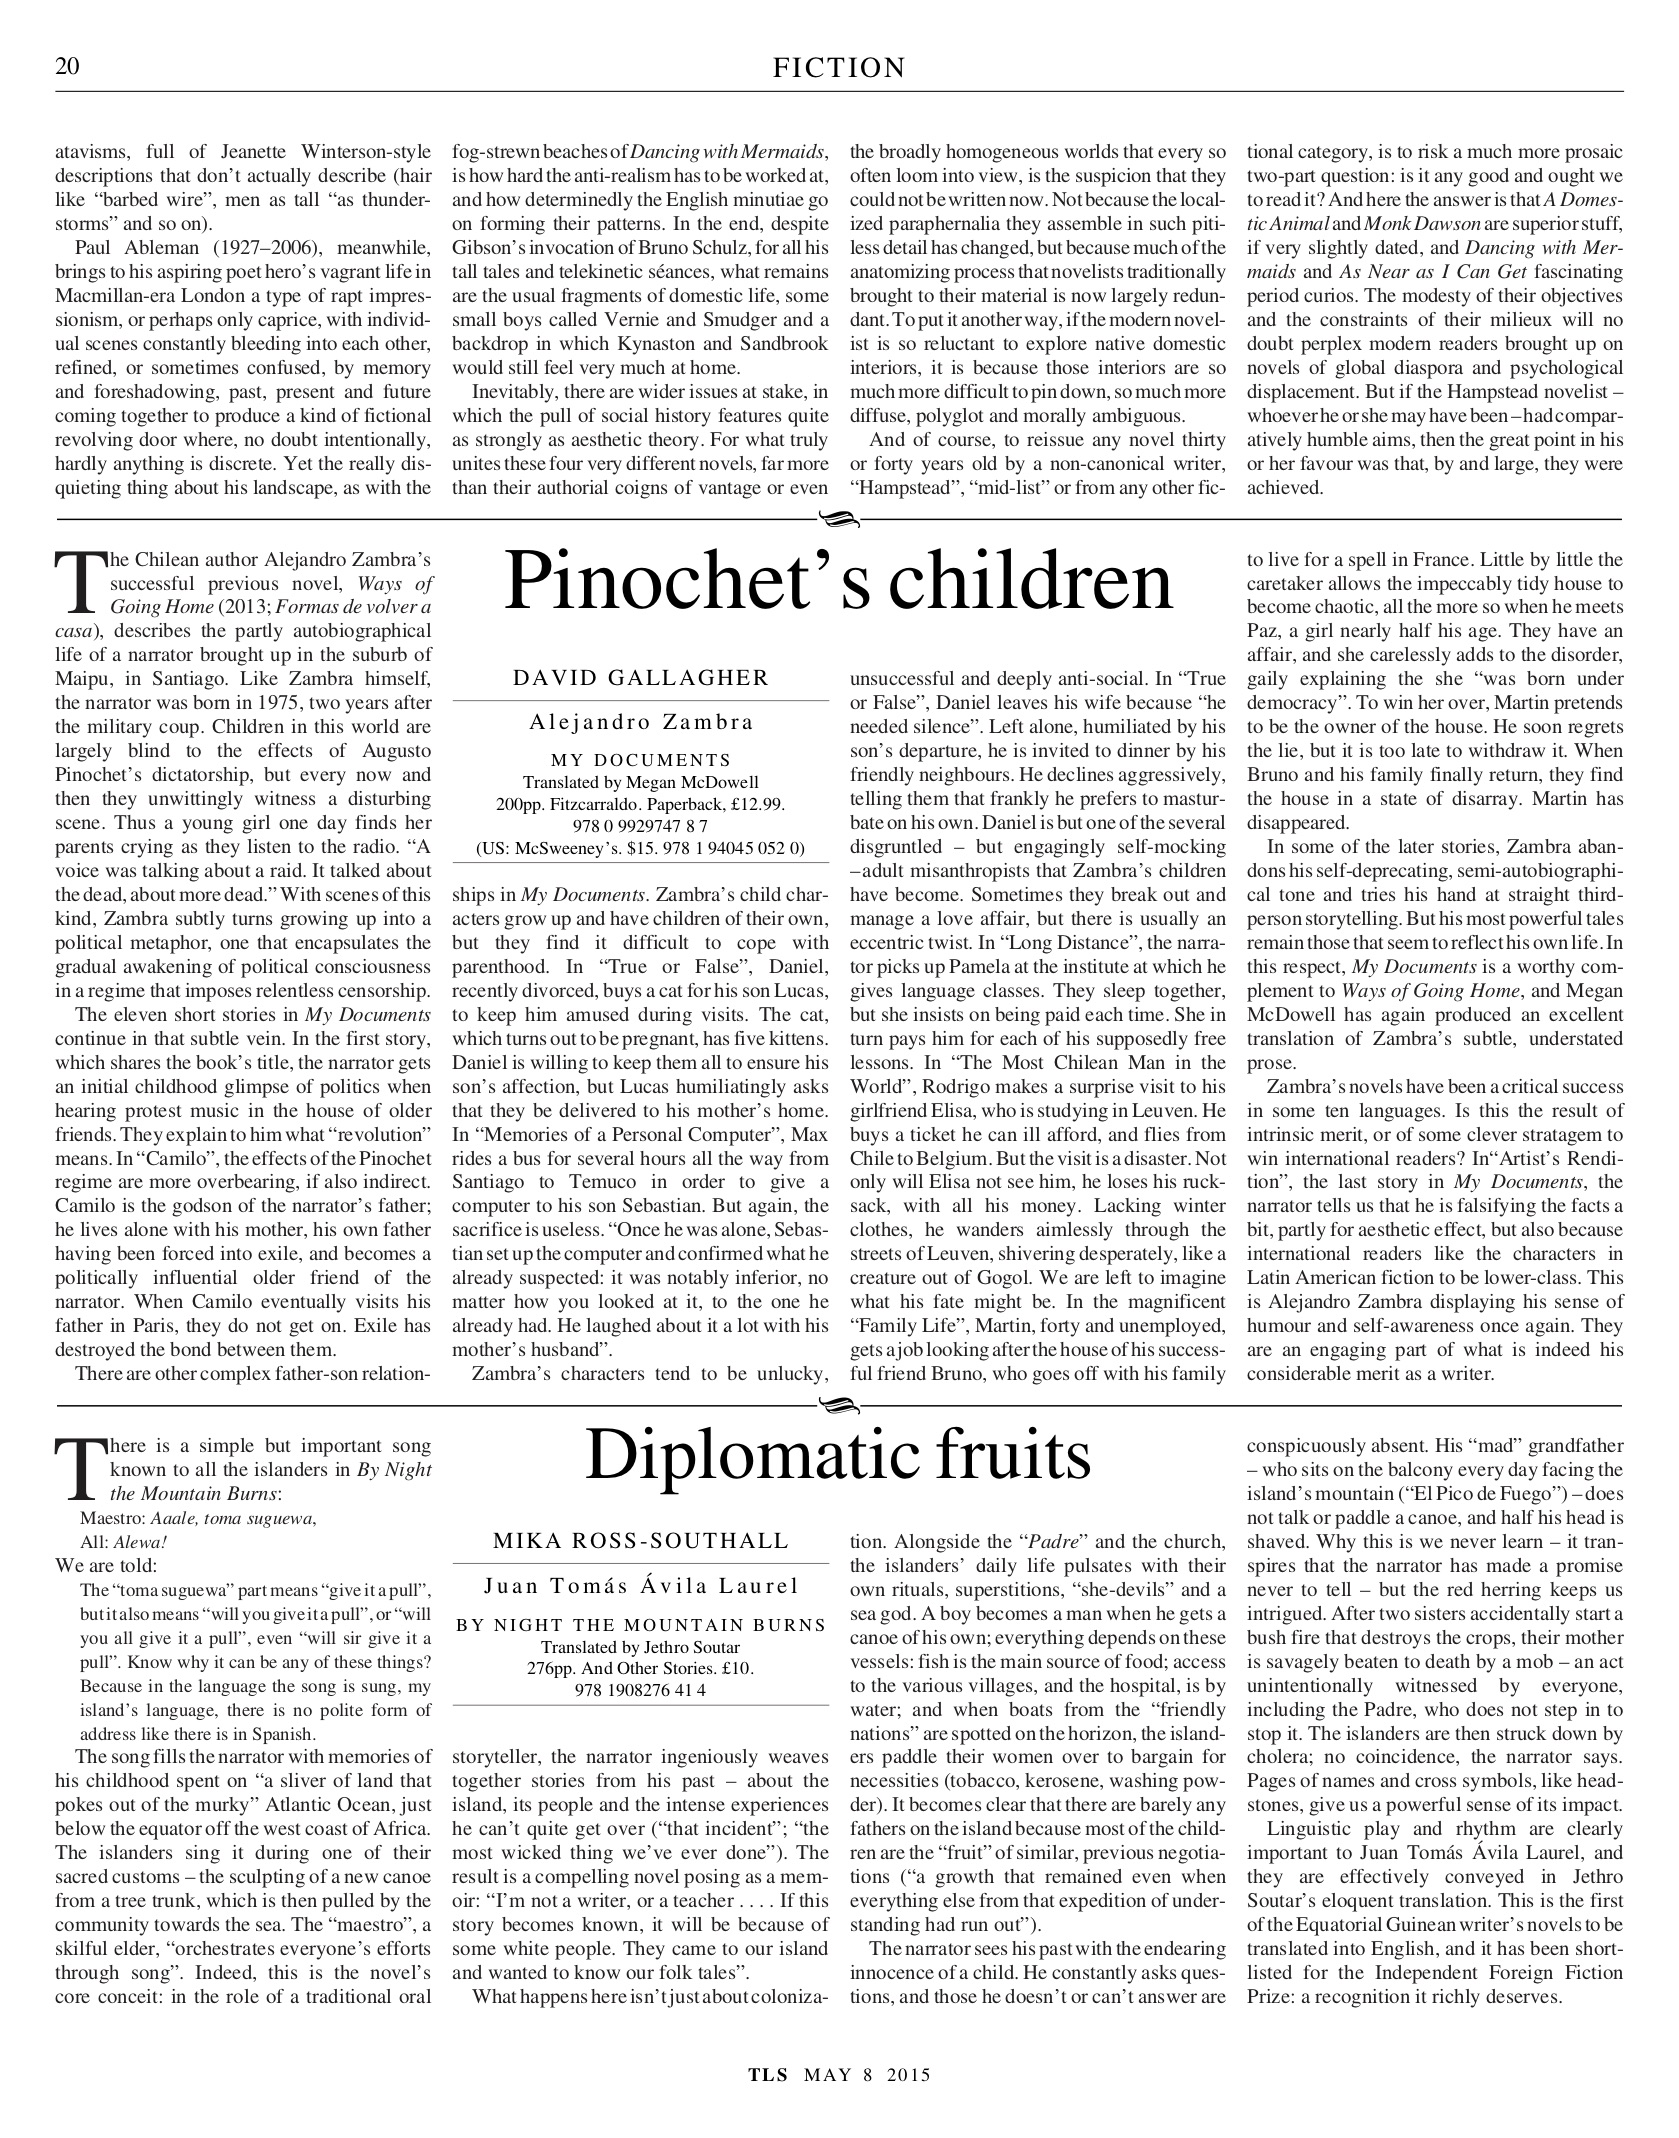 Diplomatic fruit, Published in The Times Literary Supplement, May 8, 2015